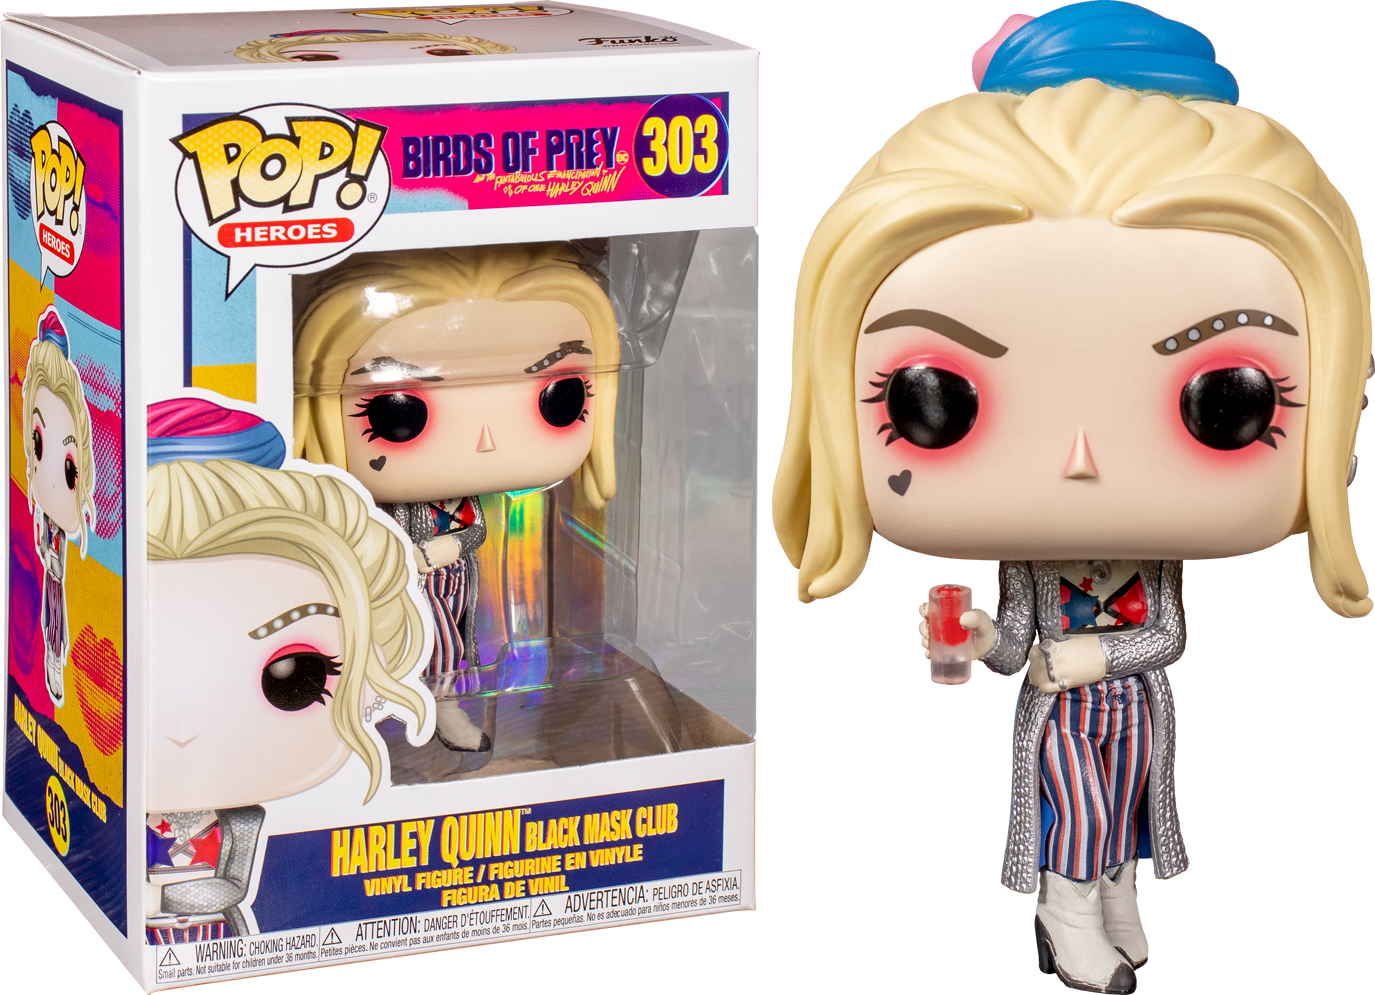 Harley Quinn Black Mask Club - Birds of Prey (2020) Pop! Vinyl Figure